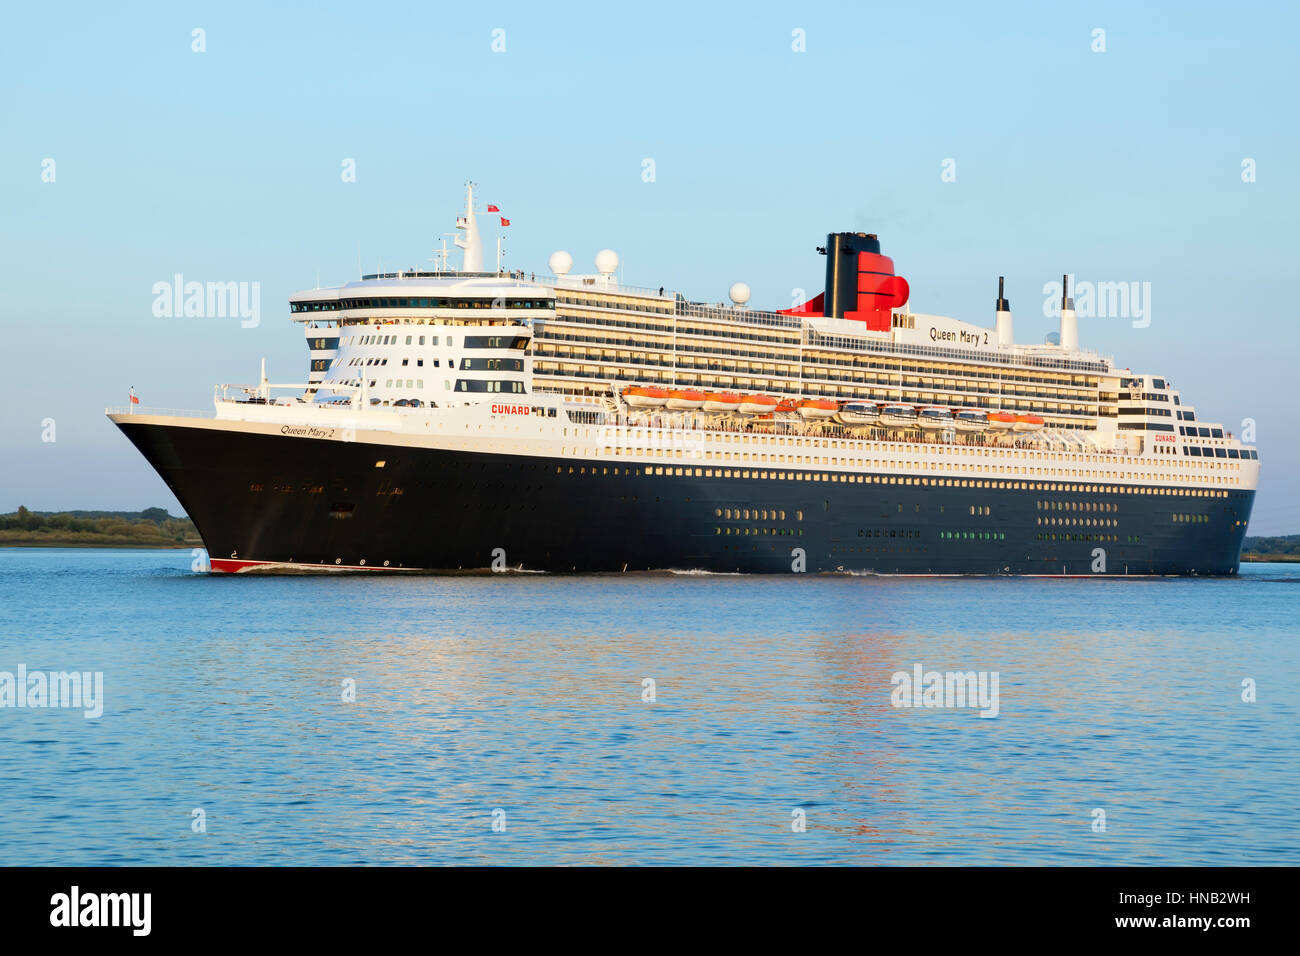 Stade, Germany - August 30, 2016: Luxury cruise liner RMS Queen Mary 2 departing from Hamburg to Southampton on Stock Photo